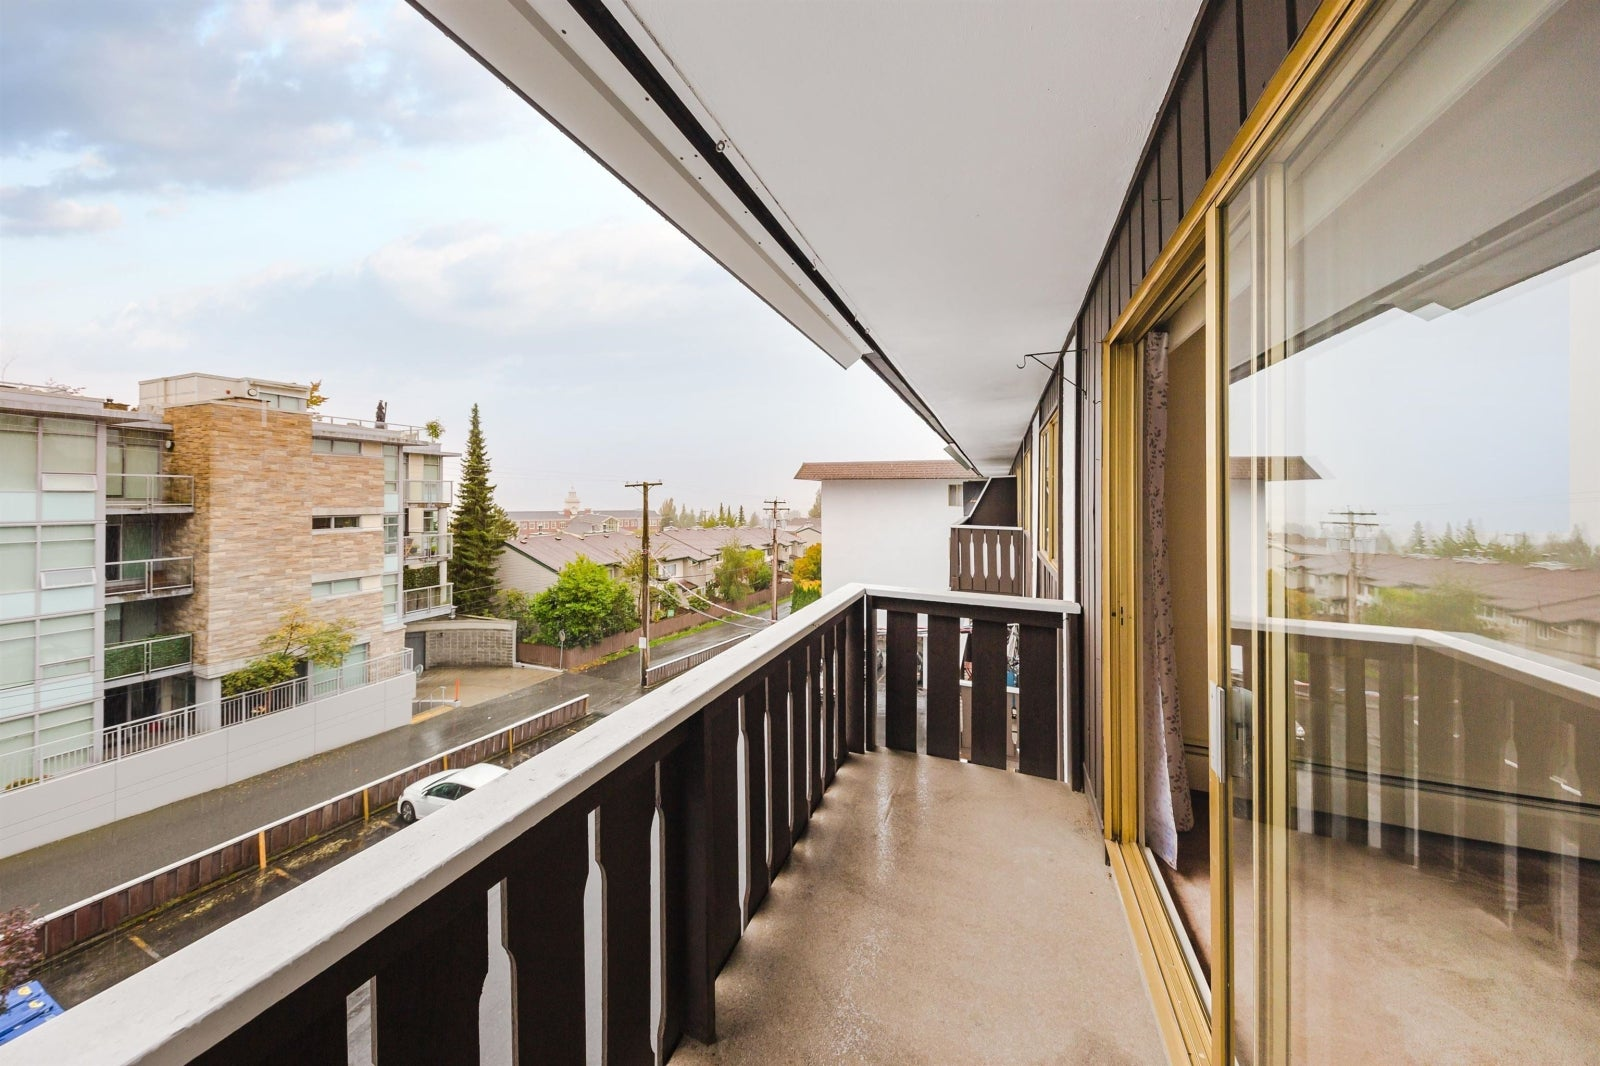 306 1345 CHESTERFIELD AVENUE - Central Lonsdale Apartment/Condo for sale, 1 Bedroom (R2622121) #9